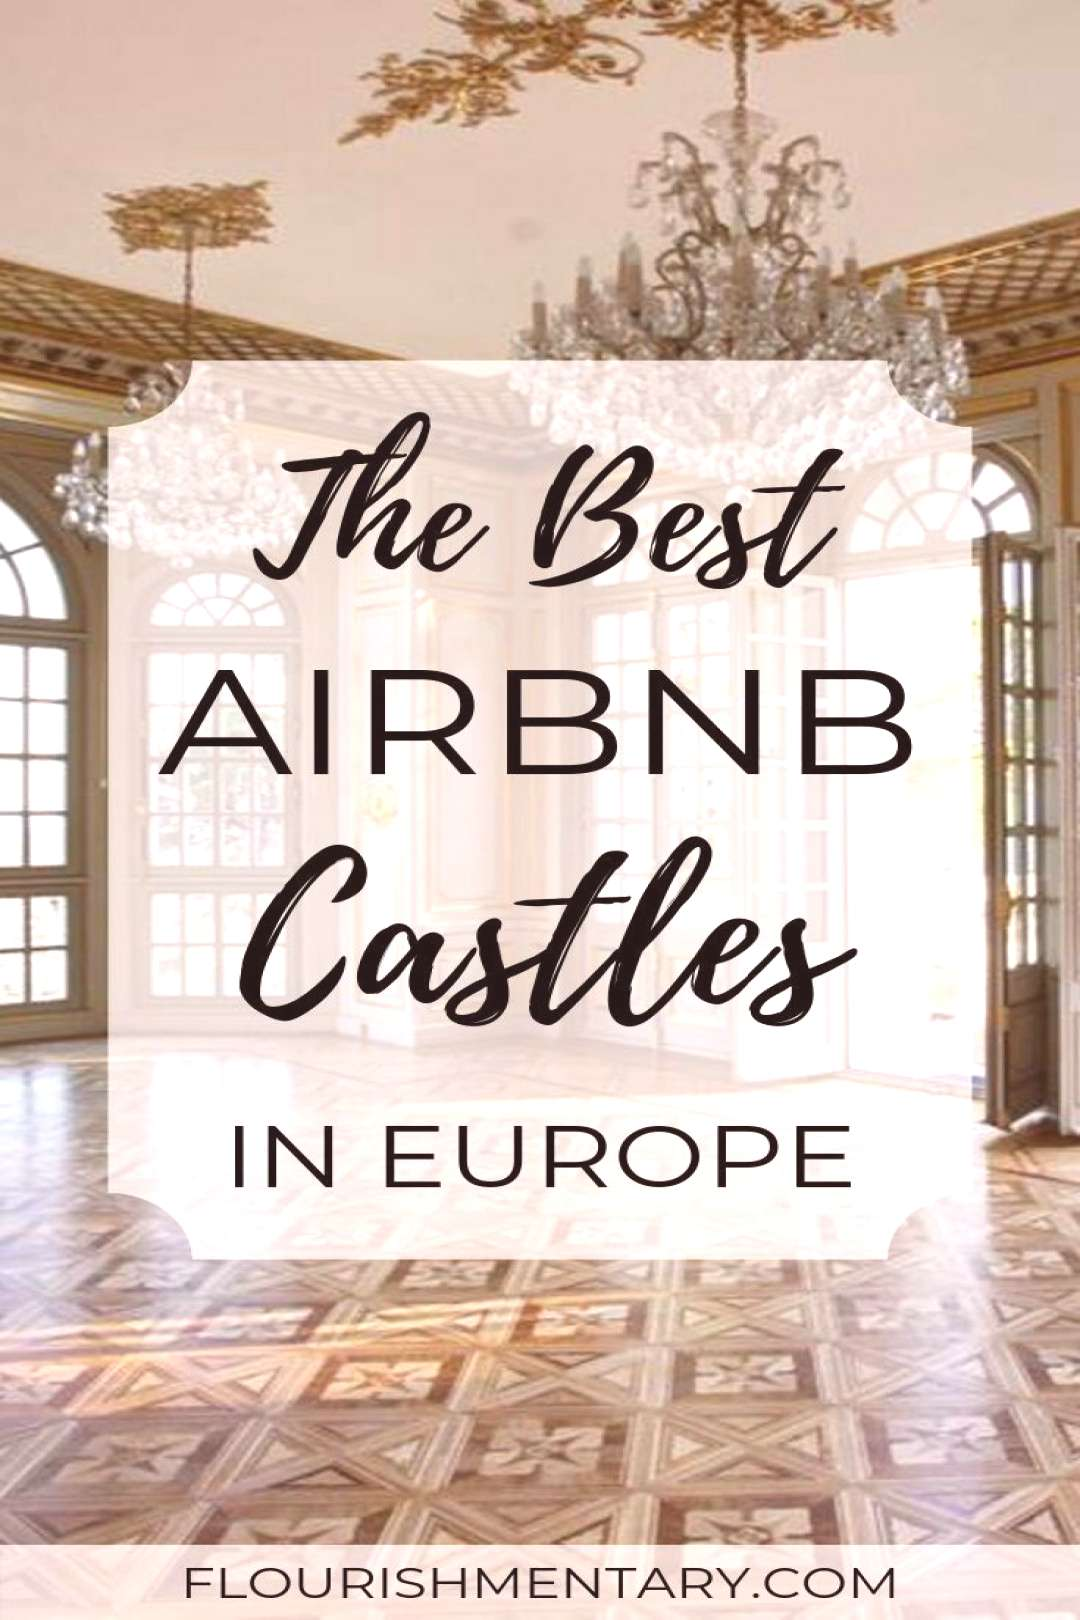 The 15 Best Airbnb Castles In Europe | Flourishmentary Ever dreamed of staying in a castle? Here ar